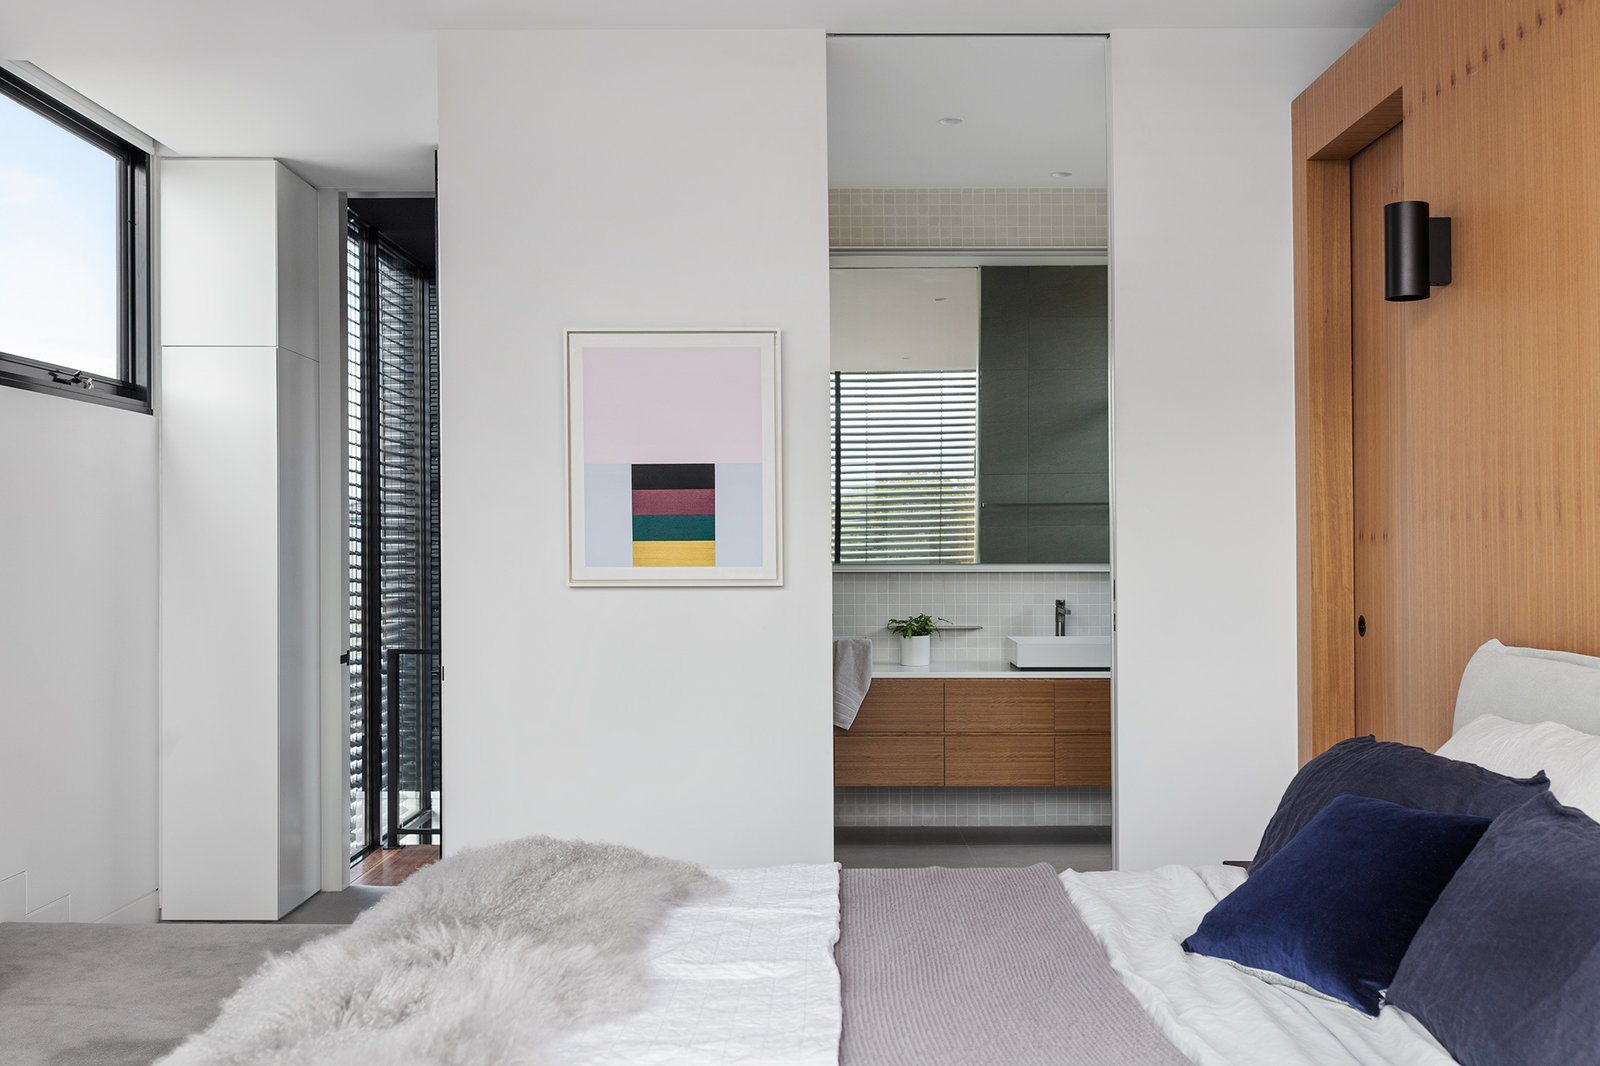 Bedroom, Wall Lighting, Concrete Floor, and Bed The windows are clad with exterior, motorized venetian blinds that provide some welcome shade.   Best Photos from A Sleek Australian Dwelling Keeps its Cool With Passive Design